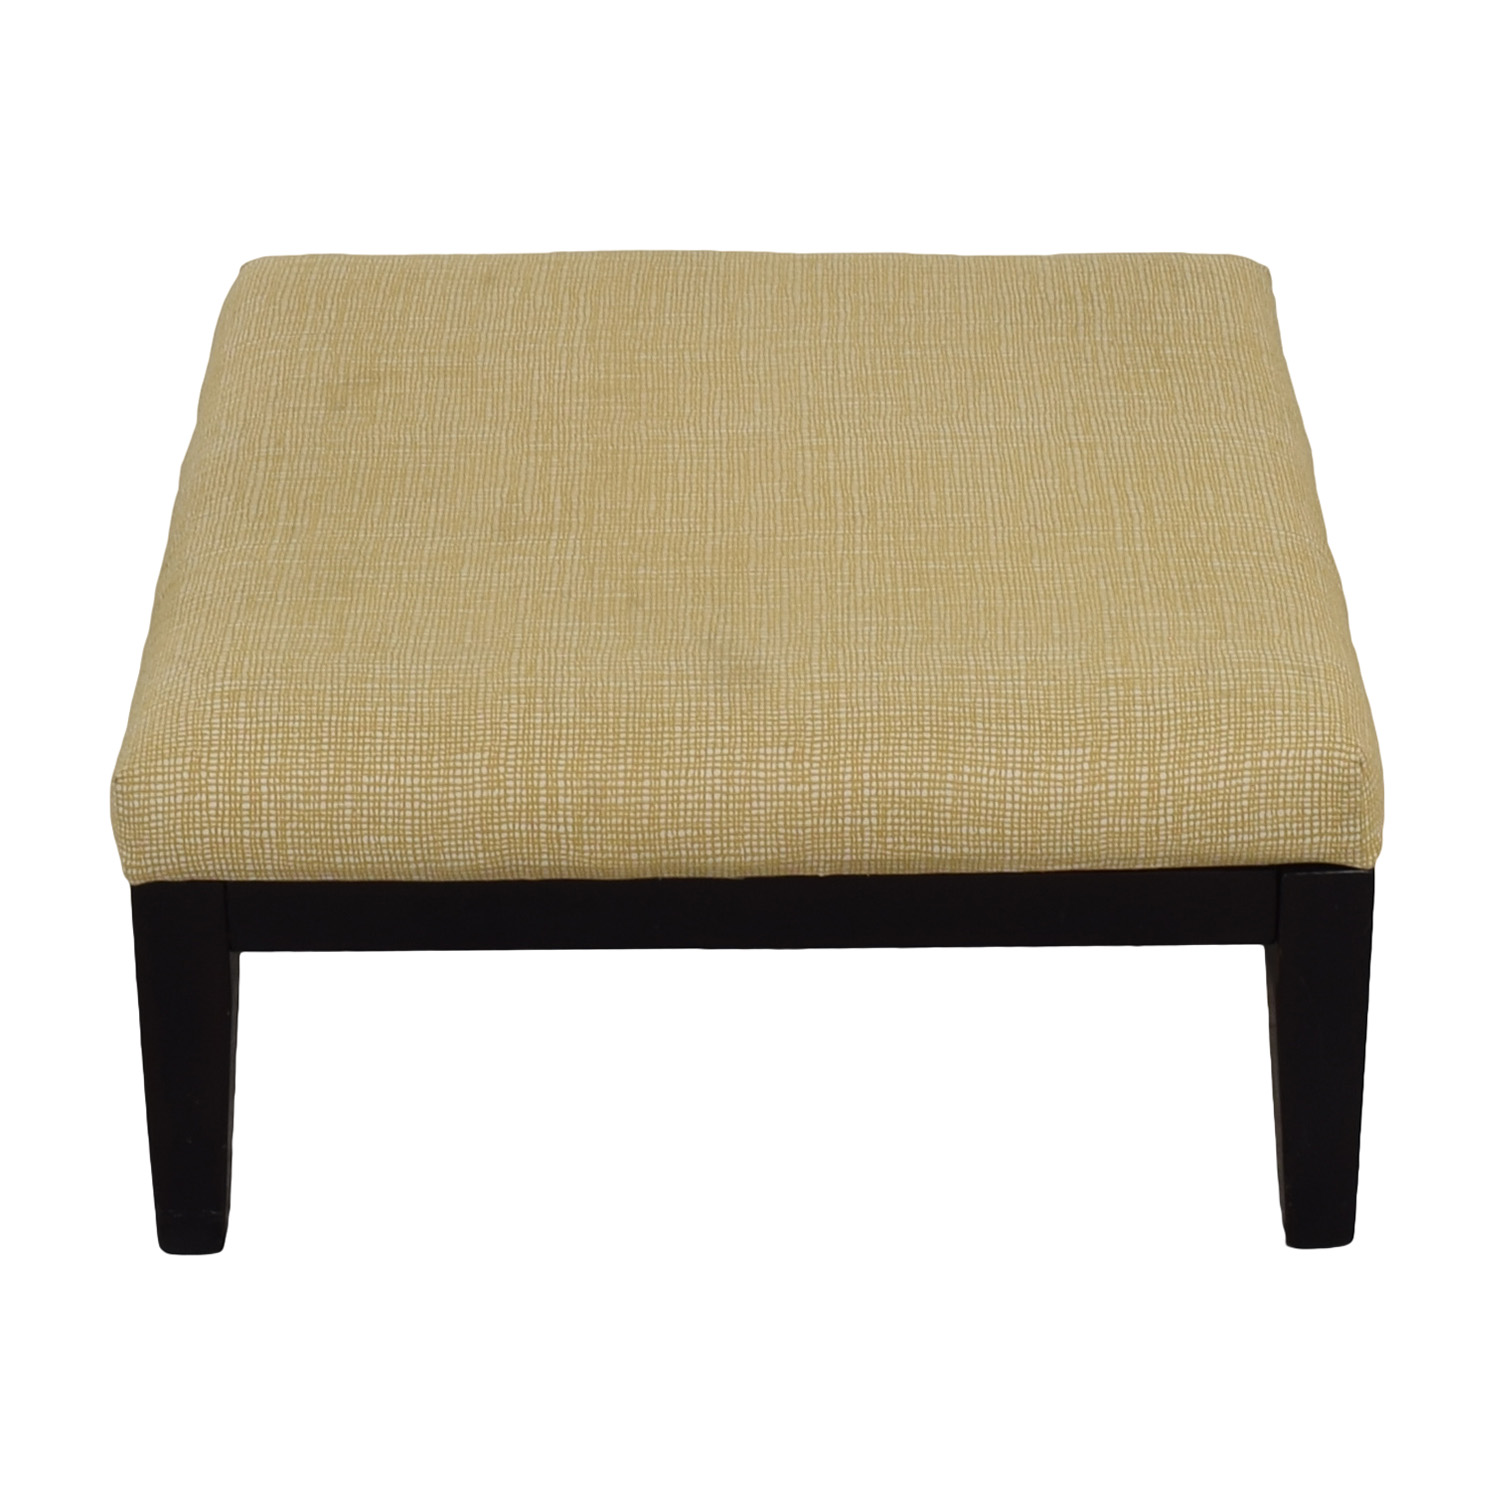 Ashley Furniture Ashley Furniture Beige Ottoman for sale